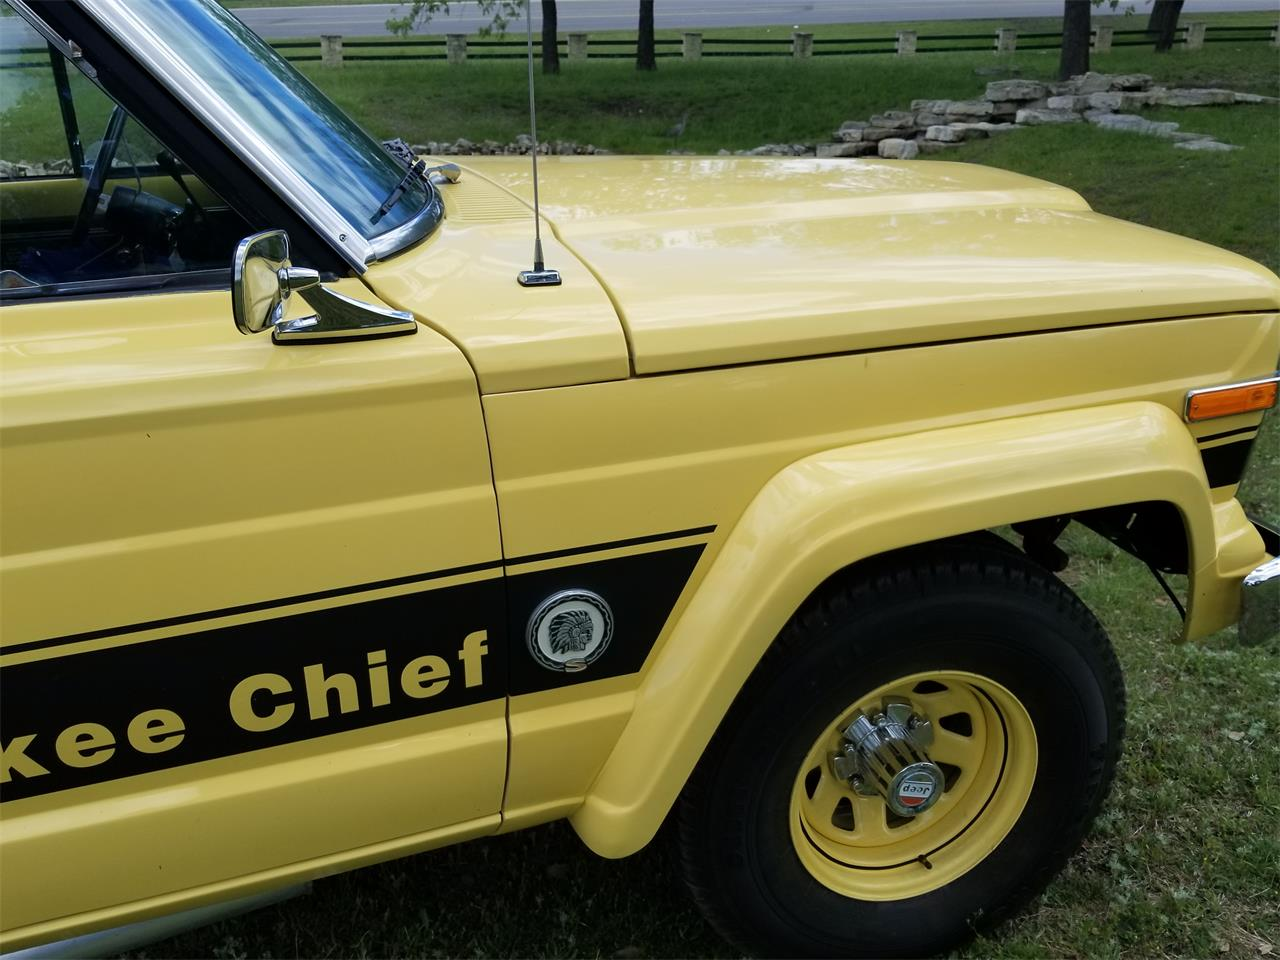 1979 Jeep Cherokee Chief for sale in Kerrville, TX – photo 29